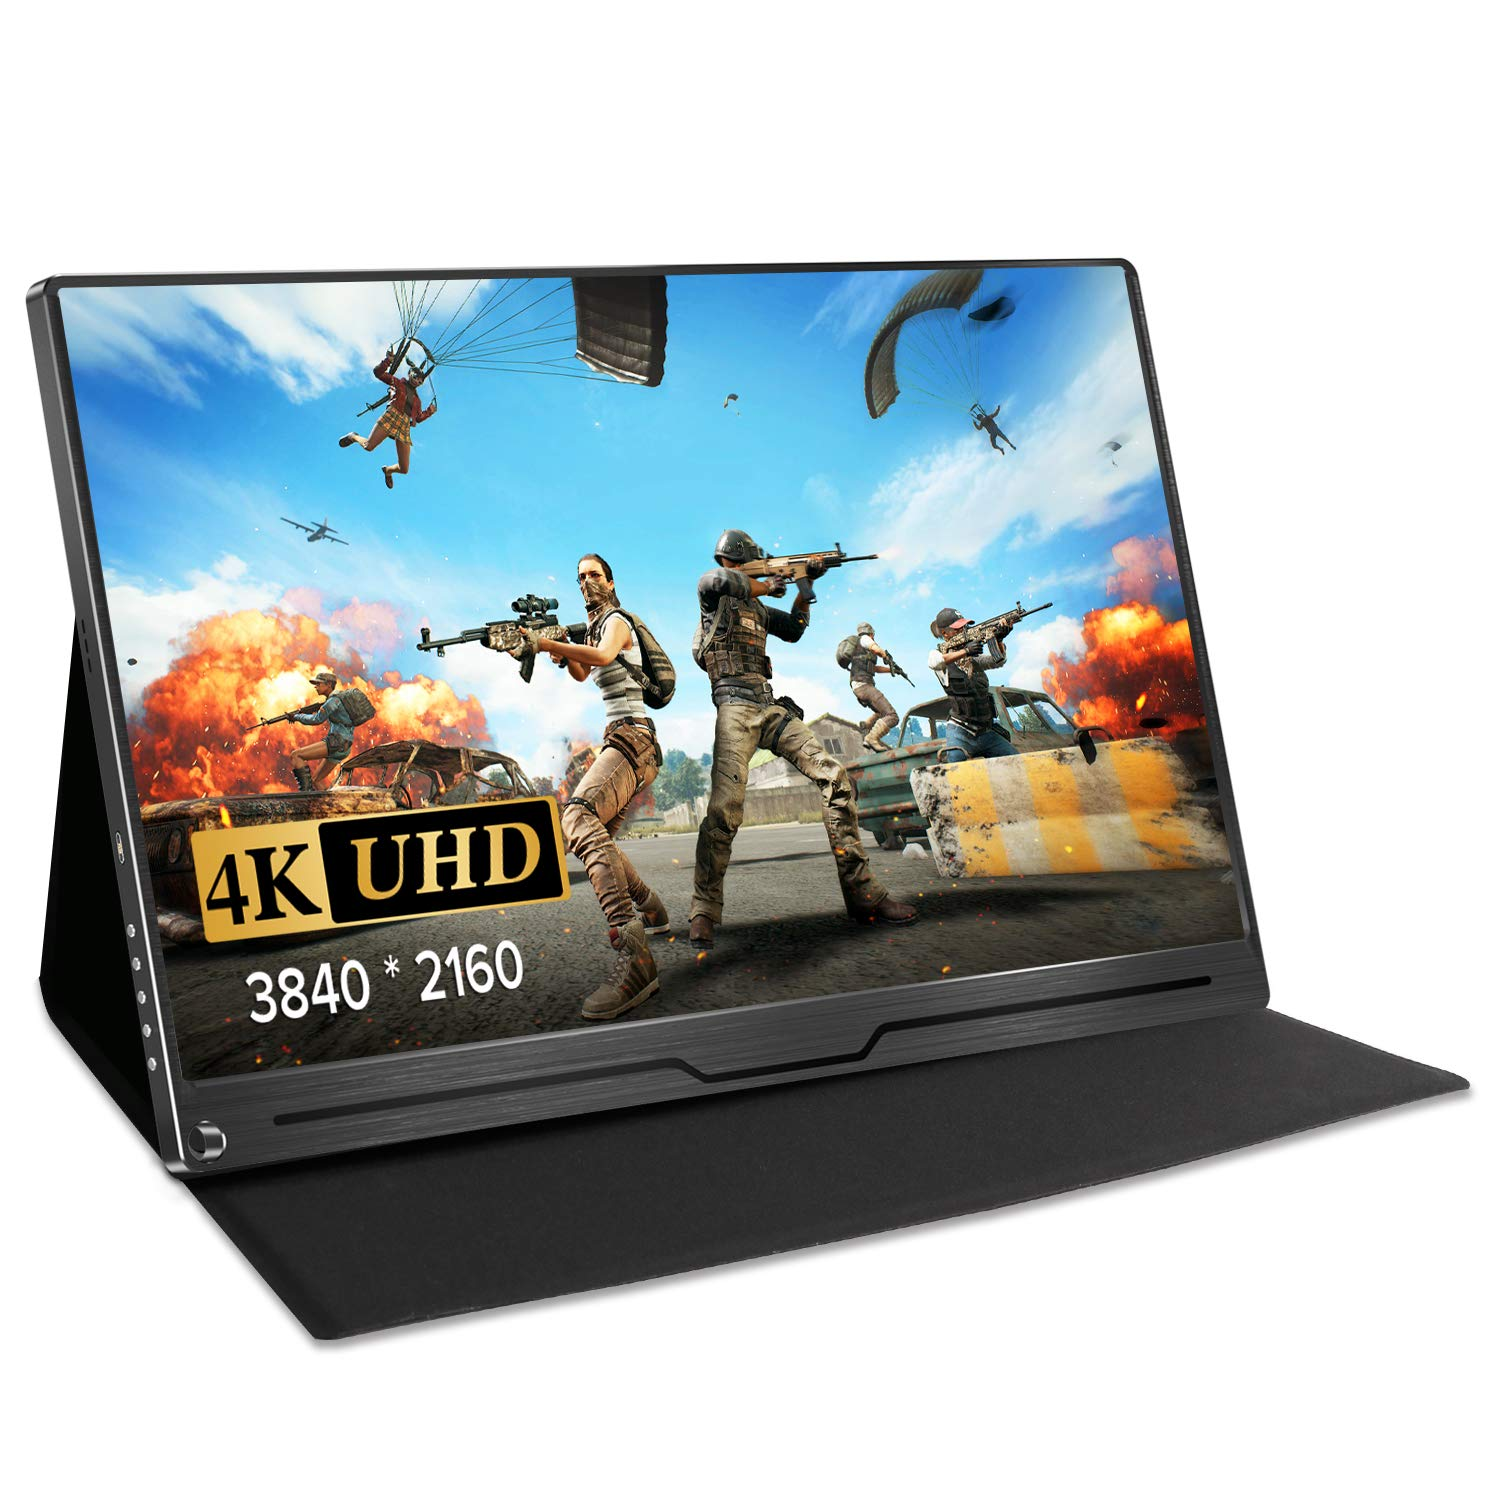 UPERFECT 4K Computer Monitor 15.6 Gaming Display Portable USB C Monitors 3840 x 2160 UHD with Stand Smart Case Eye Care Screen IPS Speakers OTG VESA HDMI Type-C Mini DP PD Xbox Rpi Drone Win PC Mac